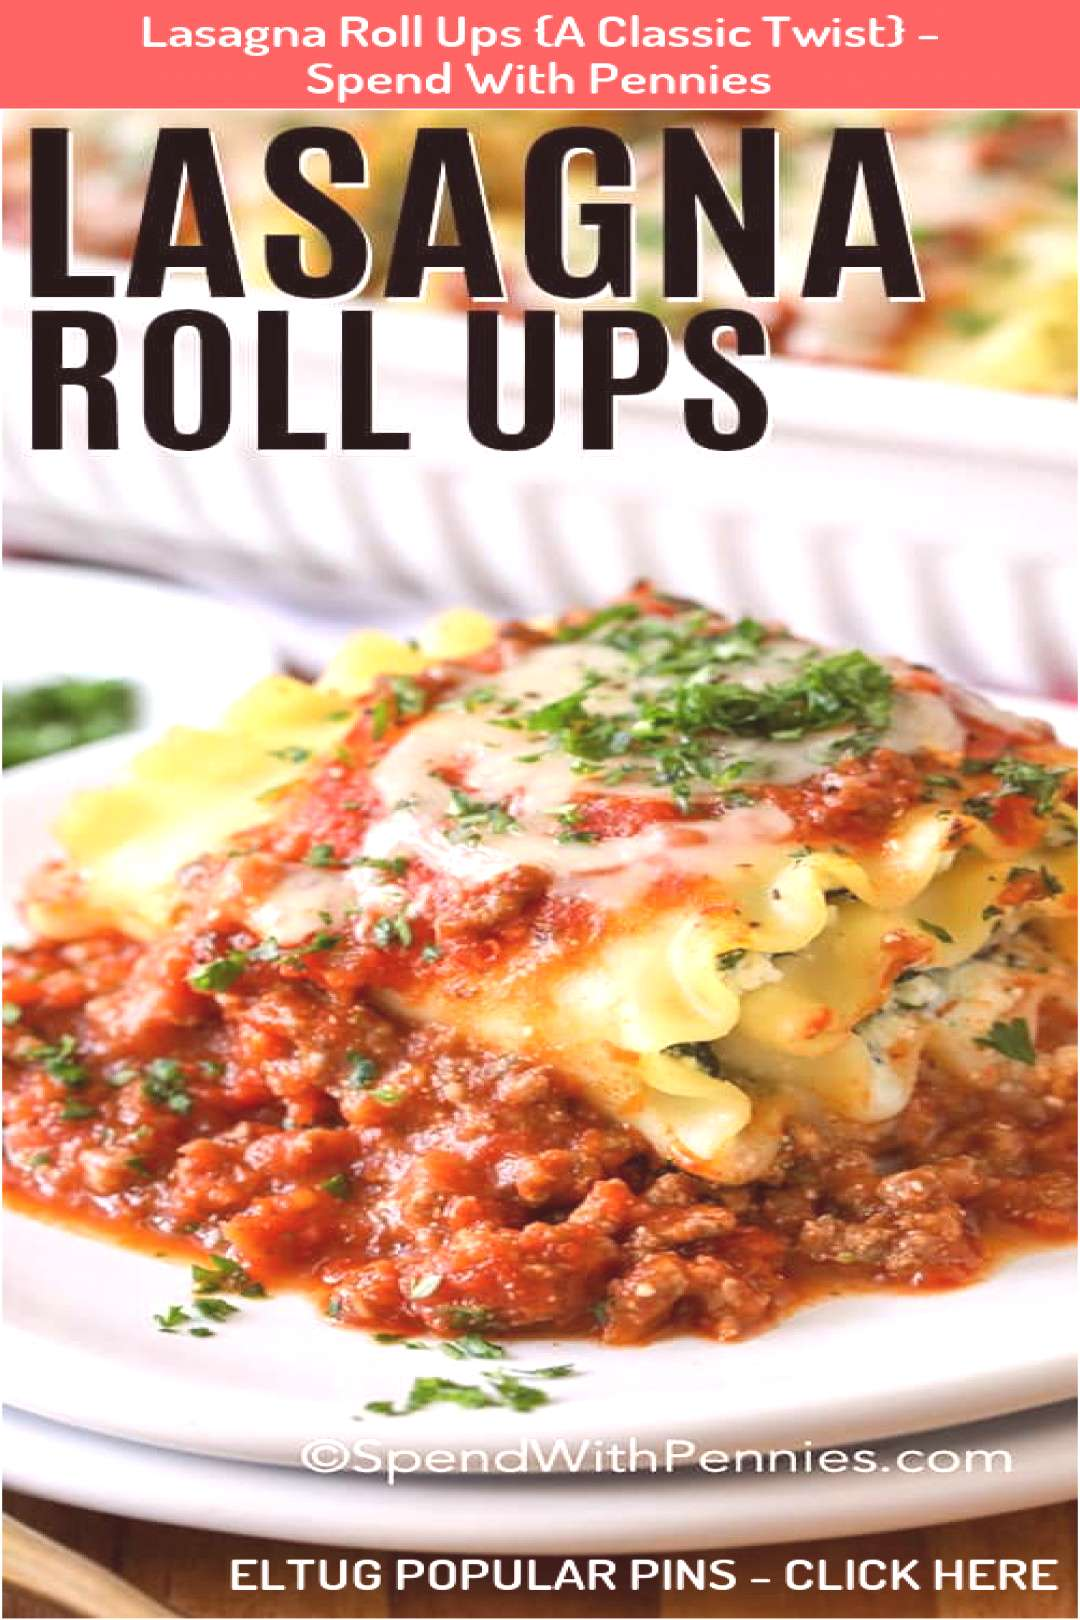 Lasagna Roll Ups A Classic Twist  Spend With Pennies Lasagna Roll Ups A Classic Twist  Spend